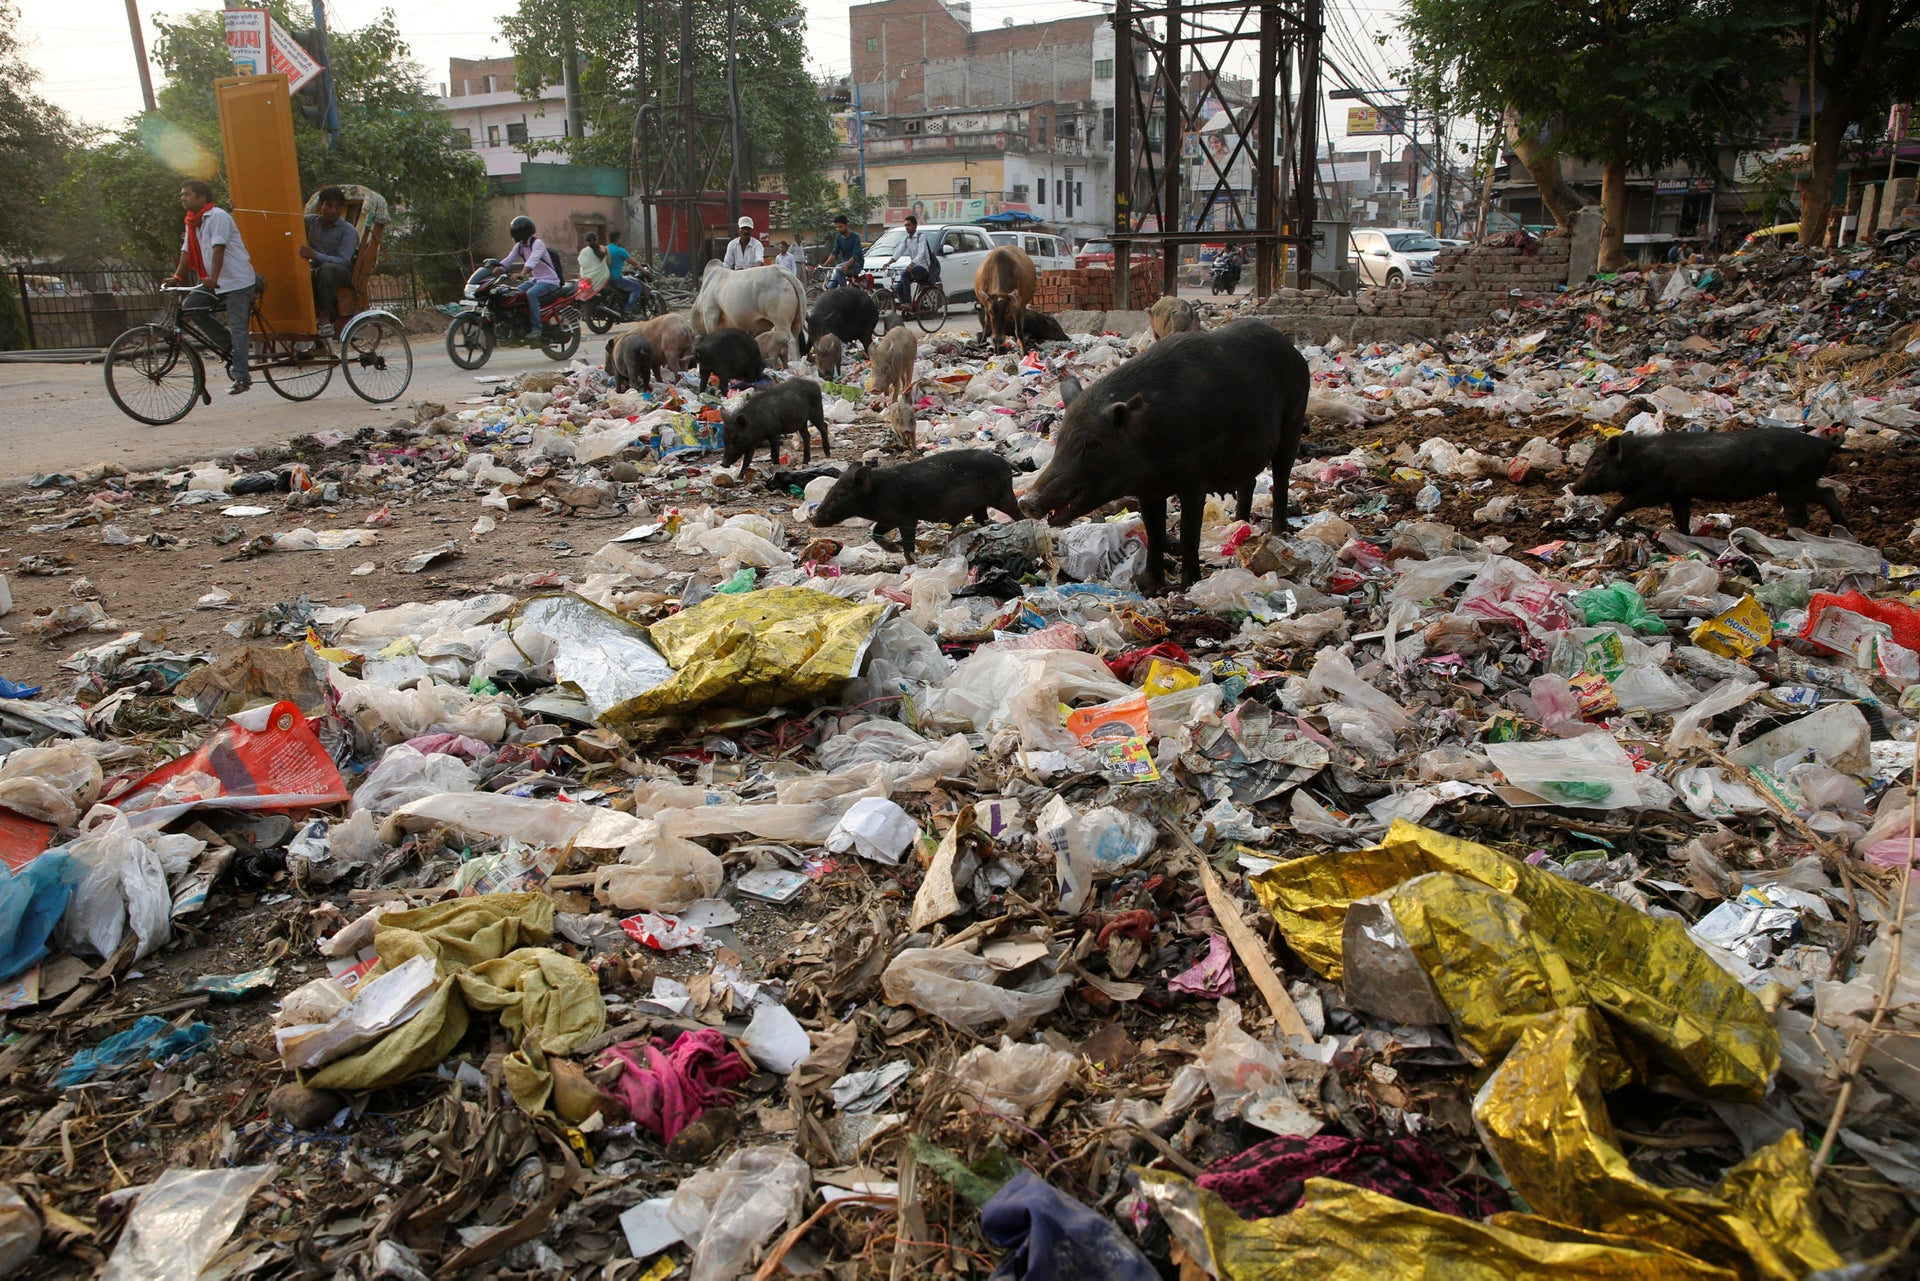 pigs and cows feed off garbage dumped by the side of a road in Allahabad, India